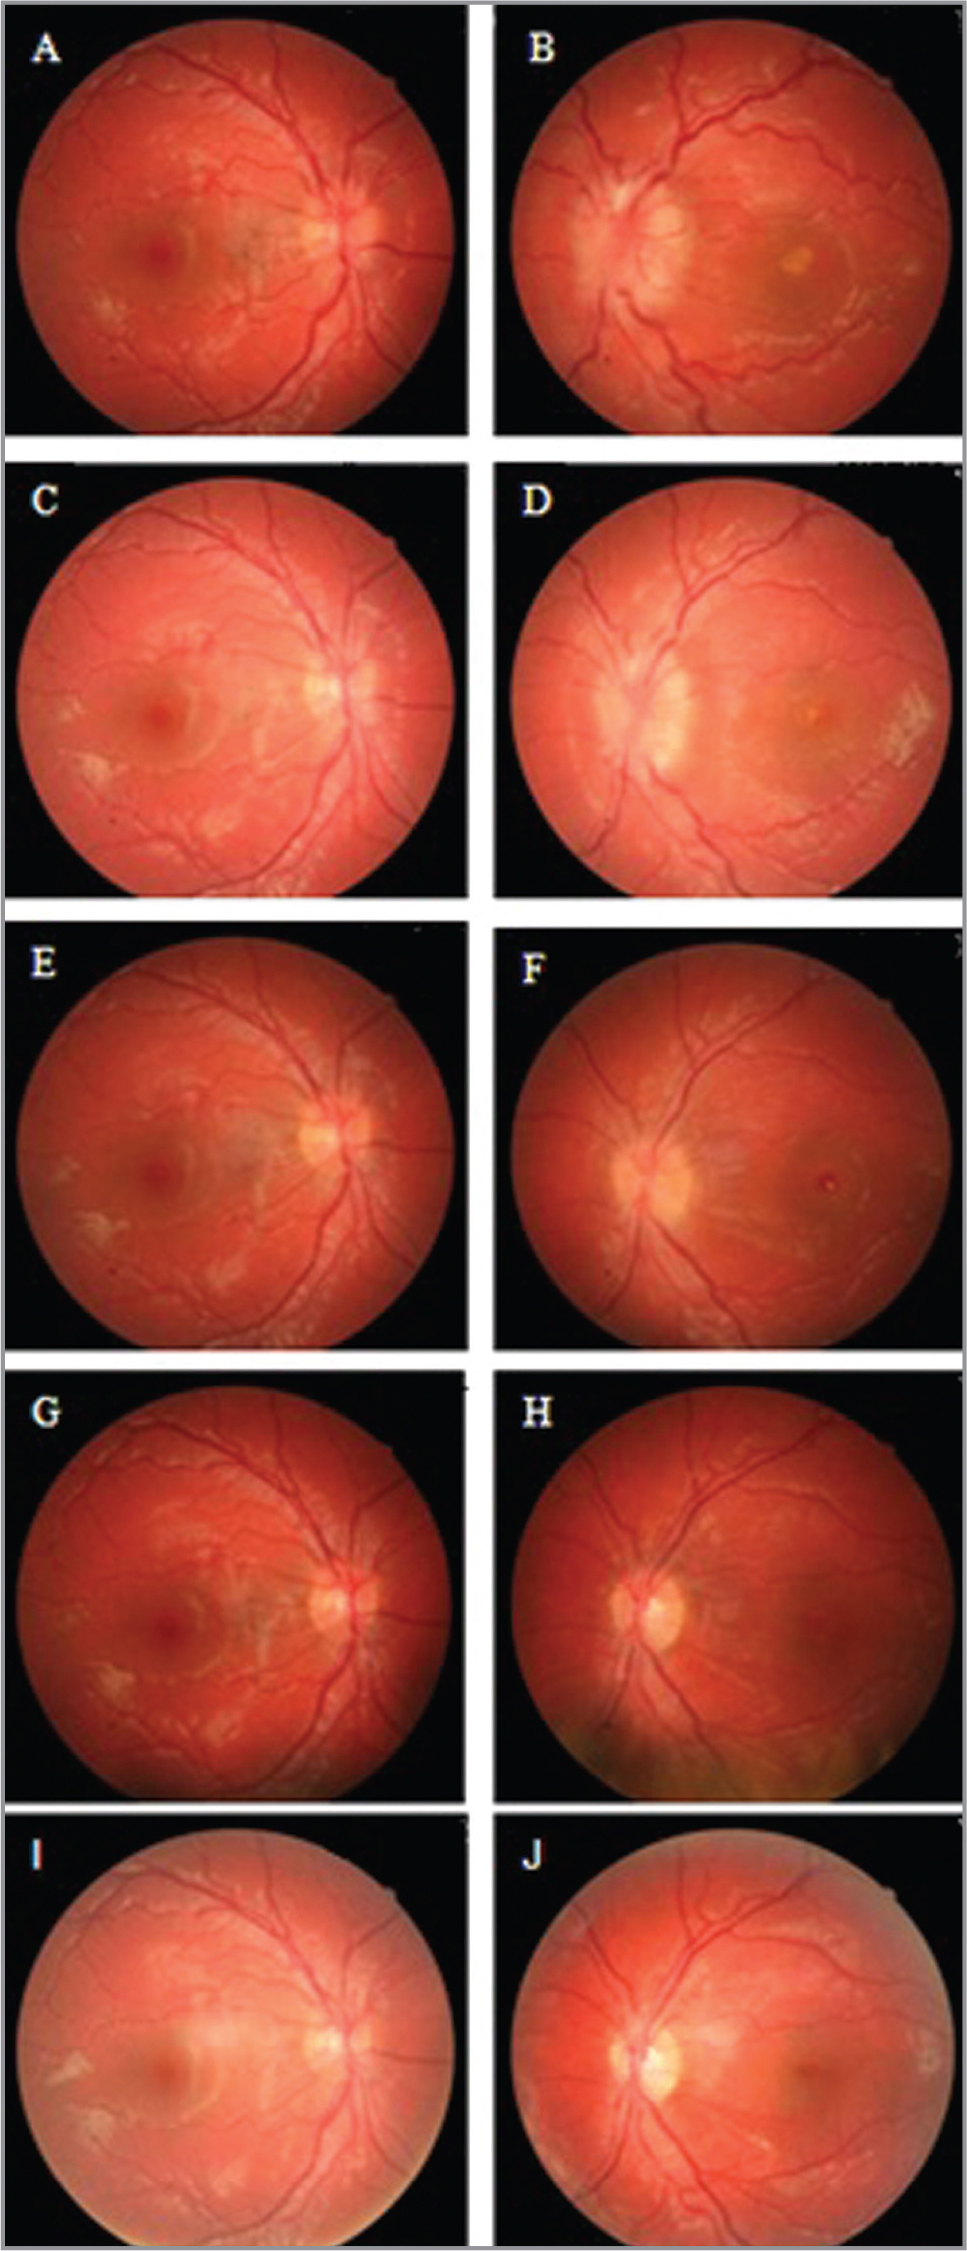 (A–J) Fundus photographs. At presentation (A, B): Papilledema predominantly in the left eye (OS) with a yellow foveal spot OS compatible with macular ischemia. At seventh day of treatment (C, D): Reduction of the papilledema in both eyes and diminution of macular ischemia and appearance of macular folds and macular hole (MH) OS. At the third week of evolution (F): Subtle disc edema and full-thickness MH (FTMH) OS. After macular surgery (H): Complete anatomic closure of FTMH OS. At twelfth month after macular surgery (J): Stability in anatomy of macula OS.